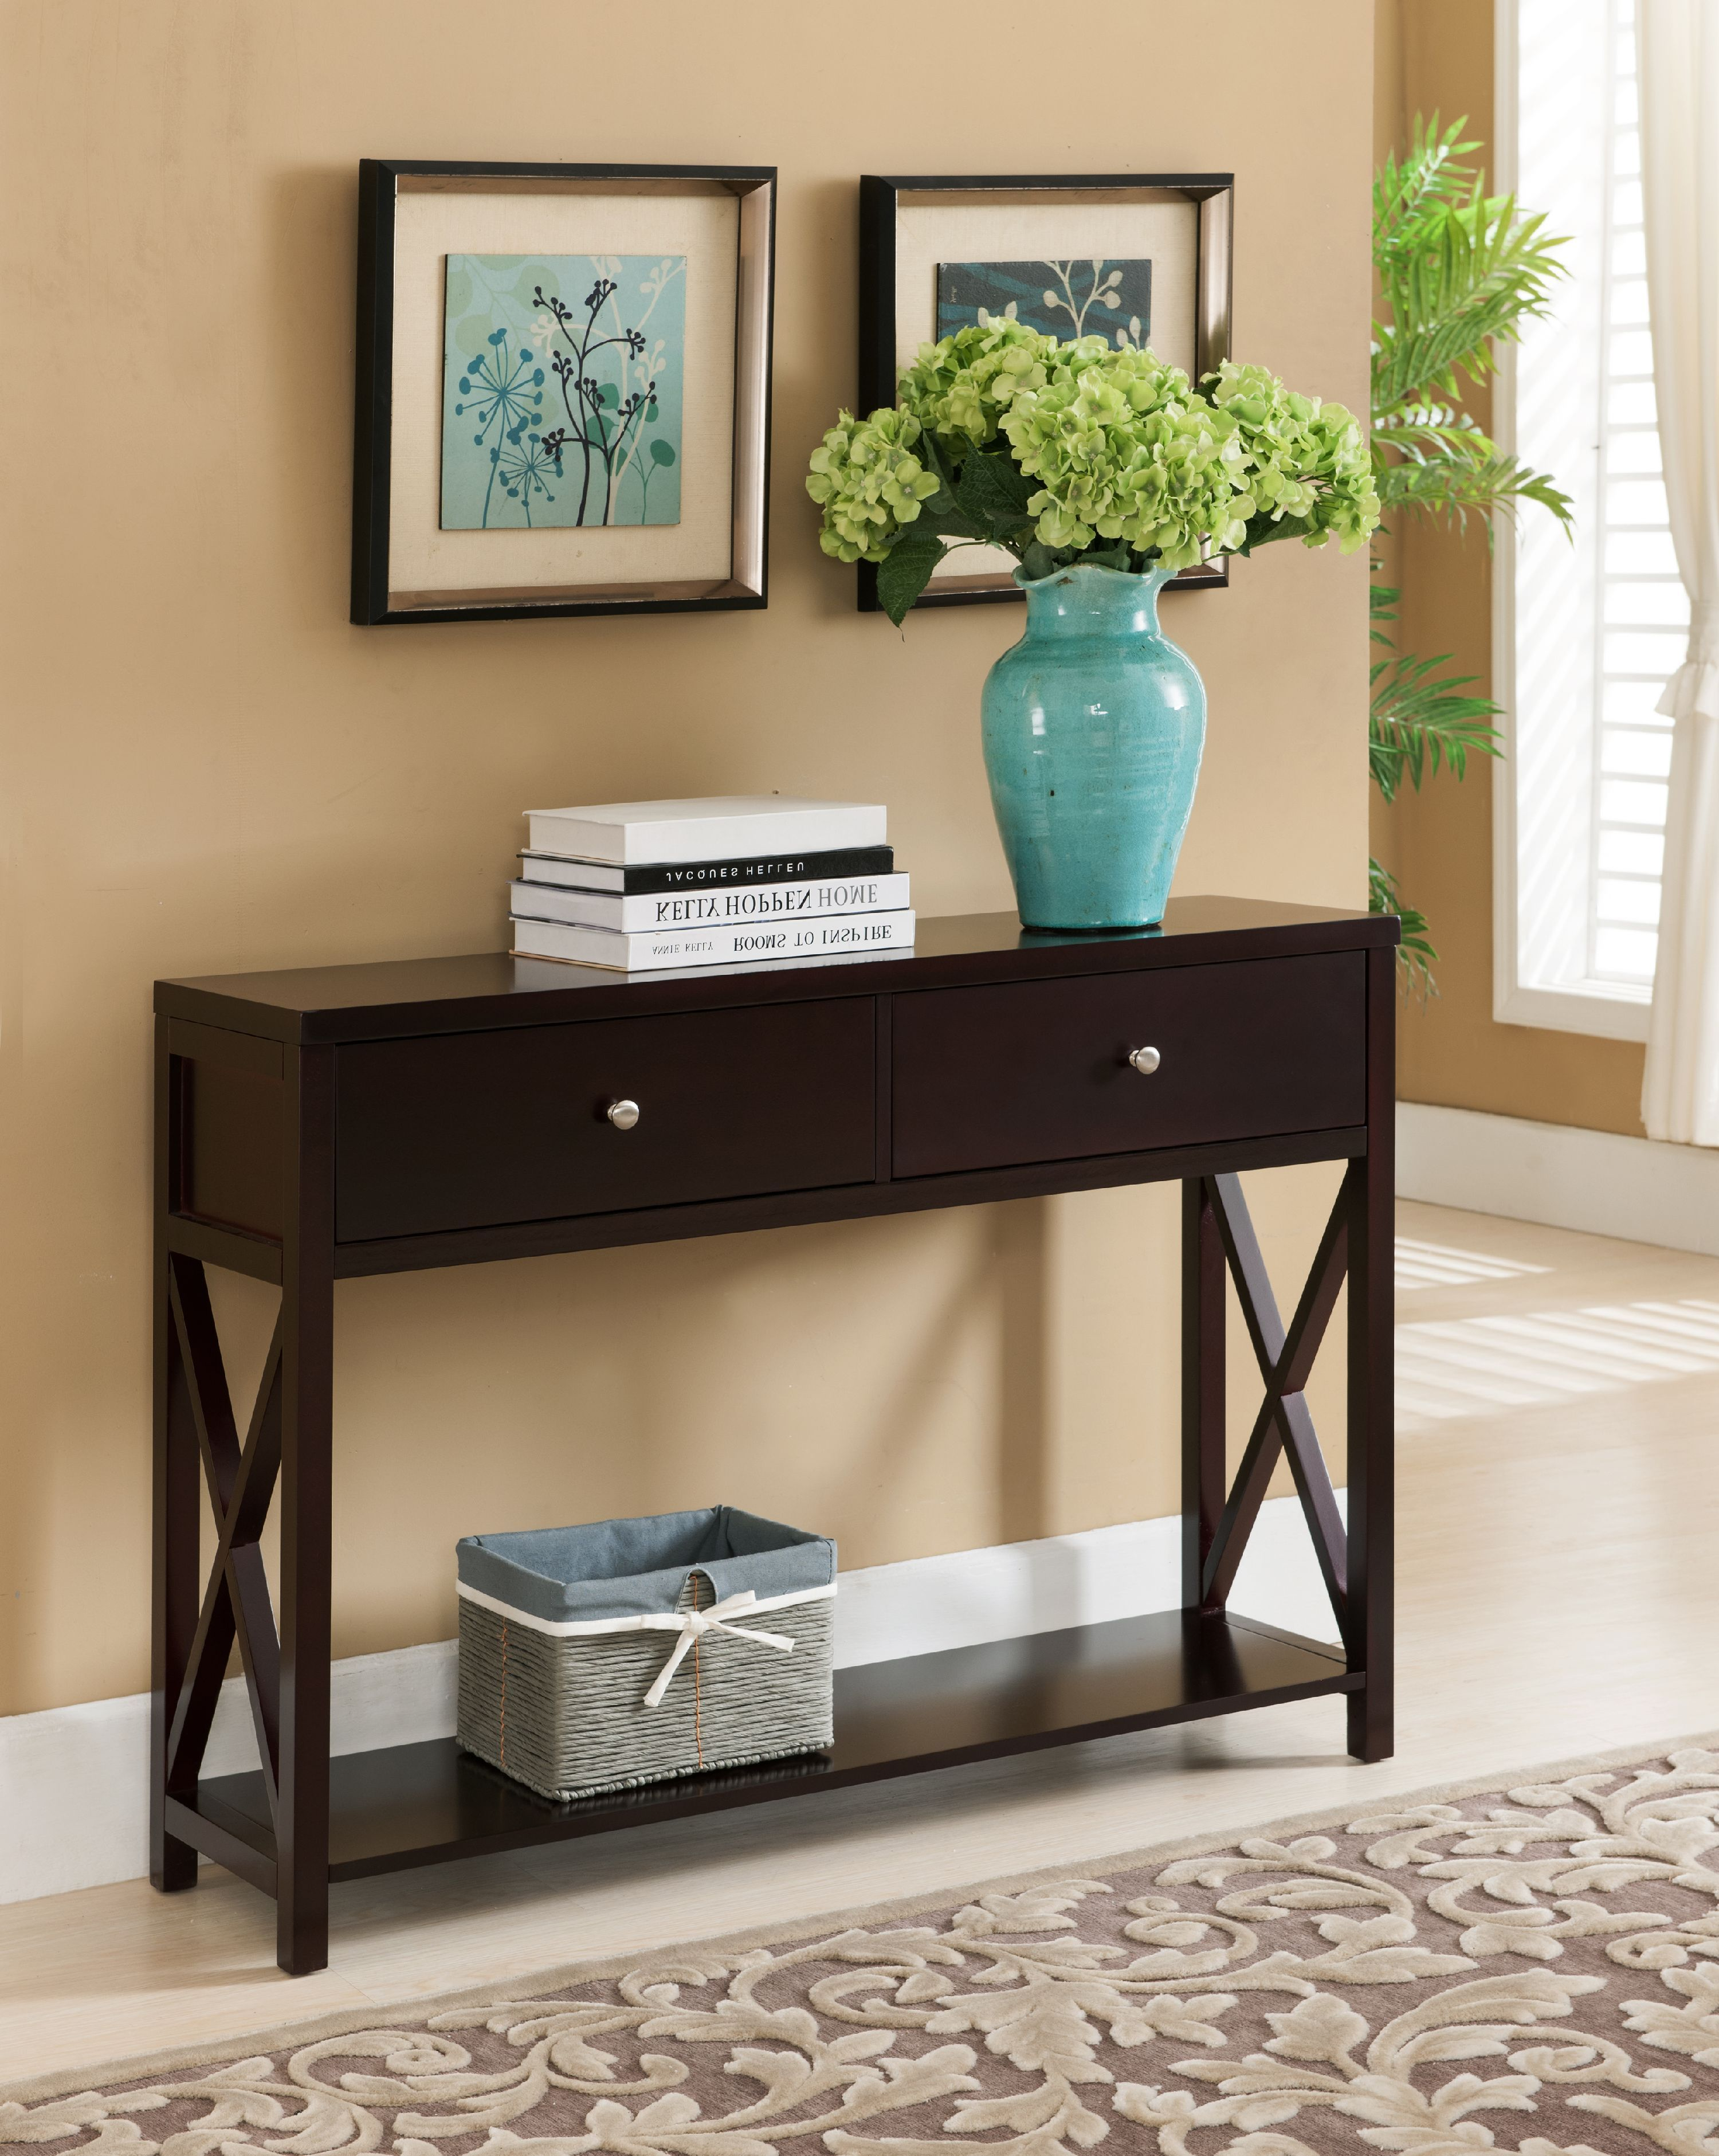 Ethan Dark Cherry Wood Contemporary Occasional Entryway Console Sofa Table With Storage Drawers Shelf Walmart Com In 2020 Sofa Table With Storage Entryway Console Table Entry Table Decor